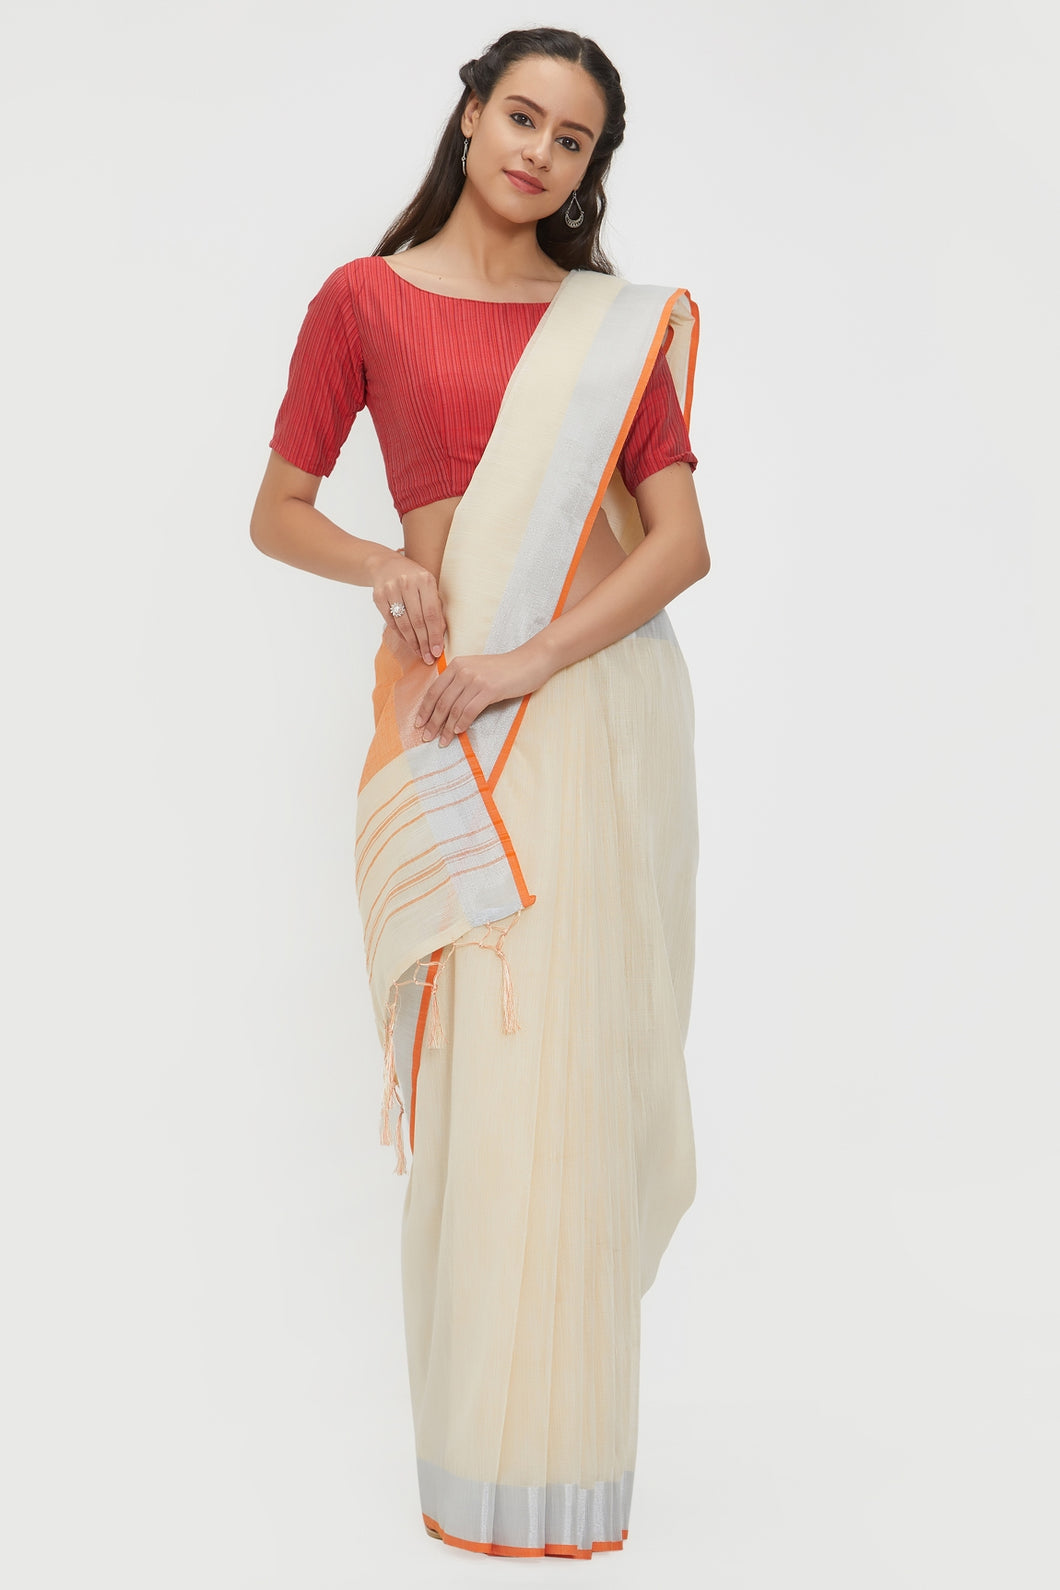 Bhelpuri Cream Linen Saree with 2 Blouse Pieces